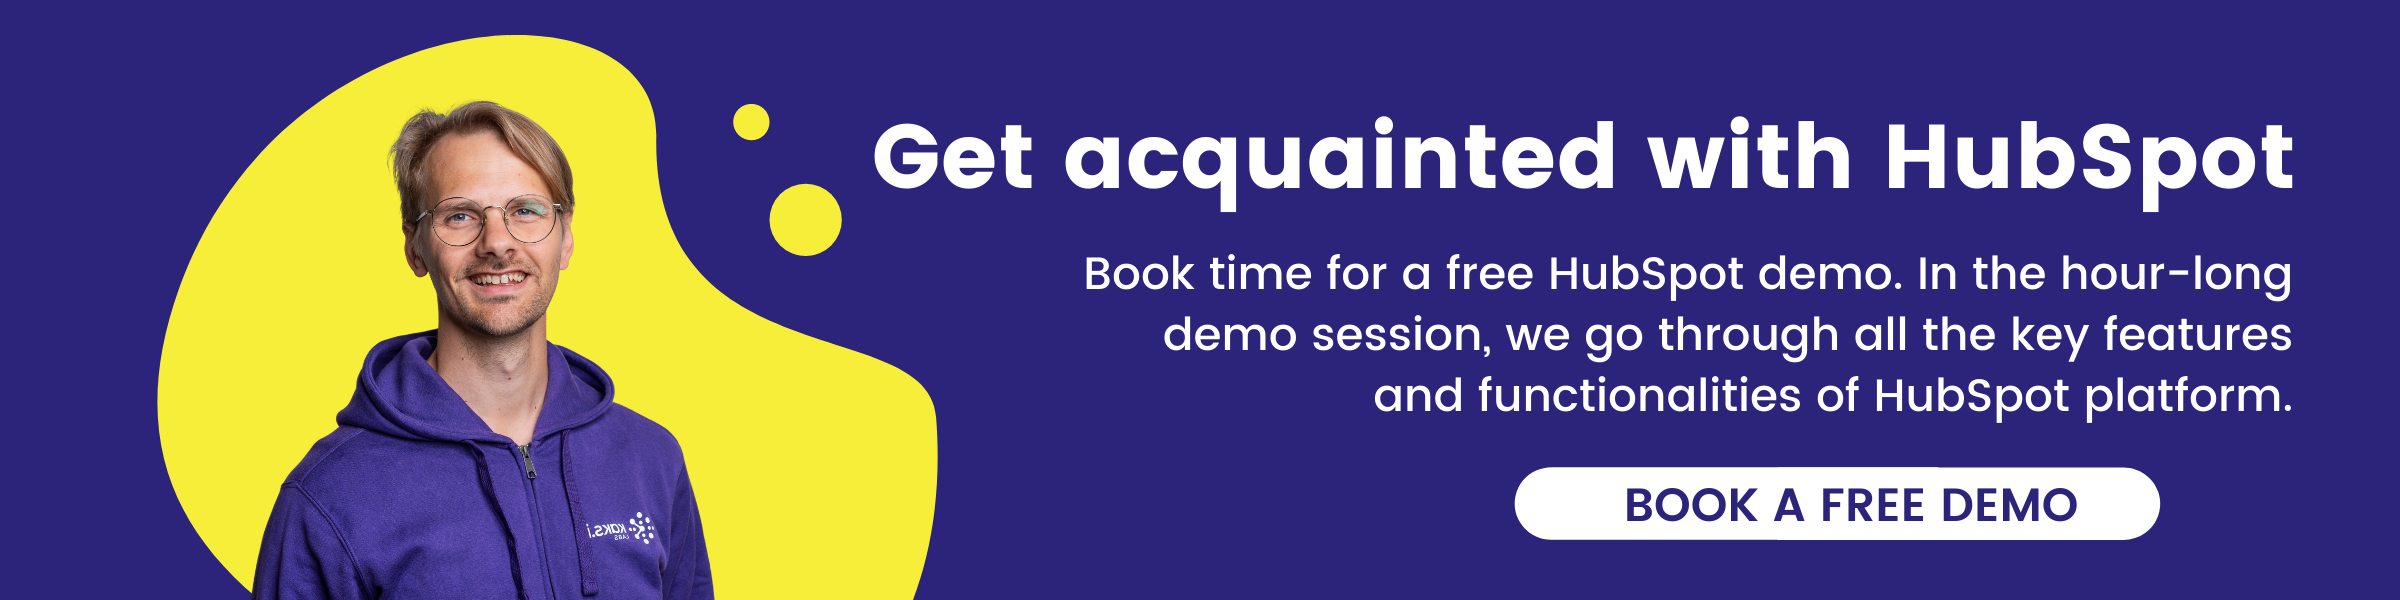 Book free HubSpot demo with our specialist!